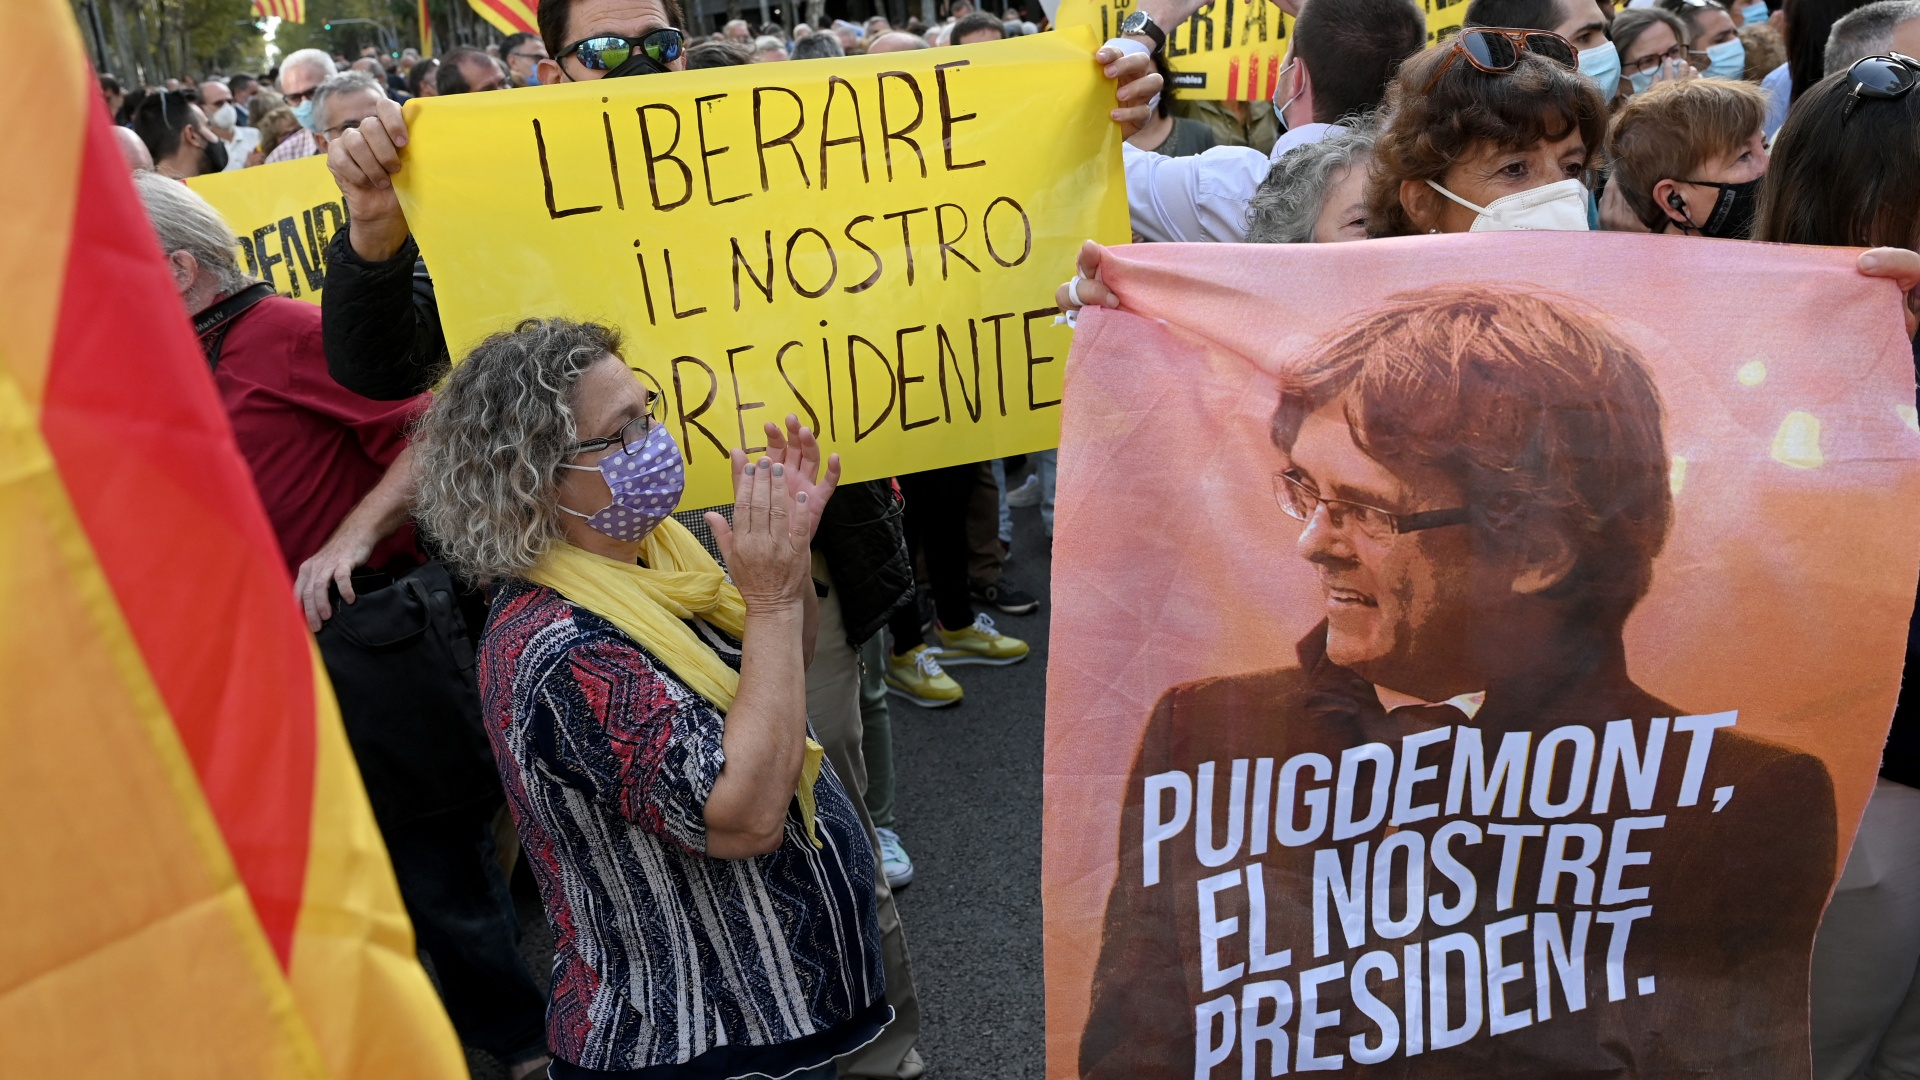 Protests outside Italian embassy in Barcelona after Puigdemont arrest